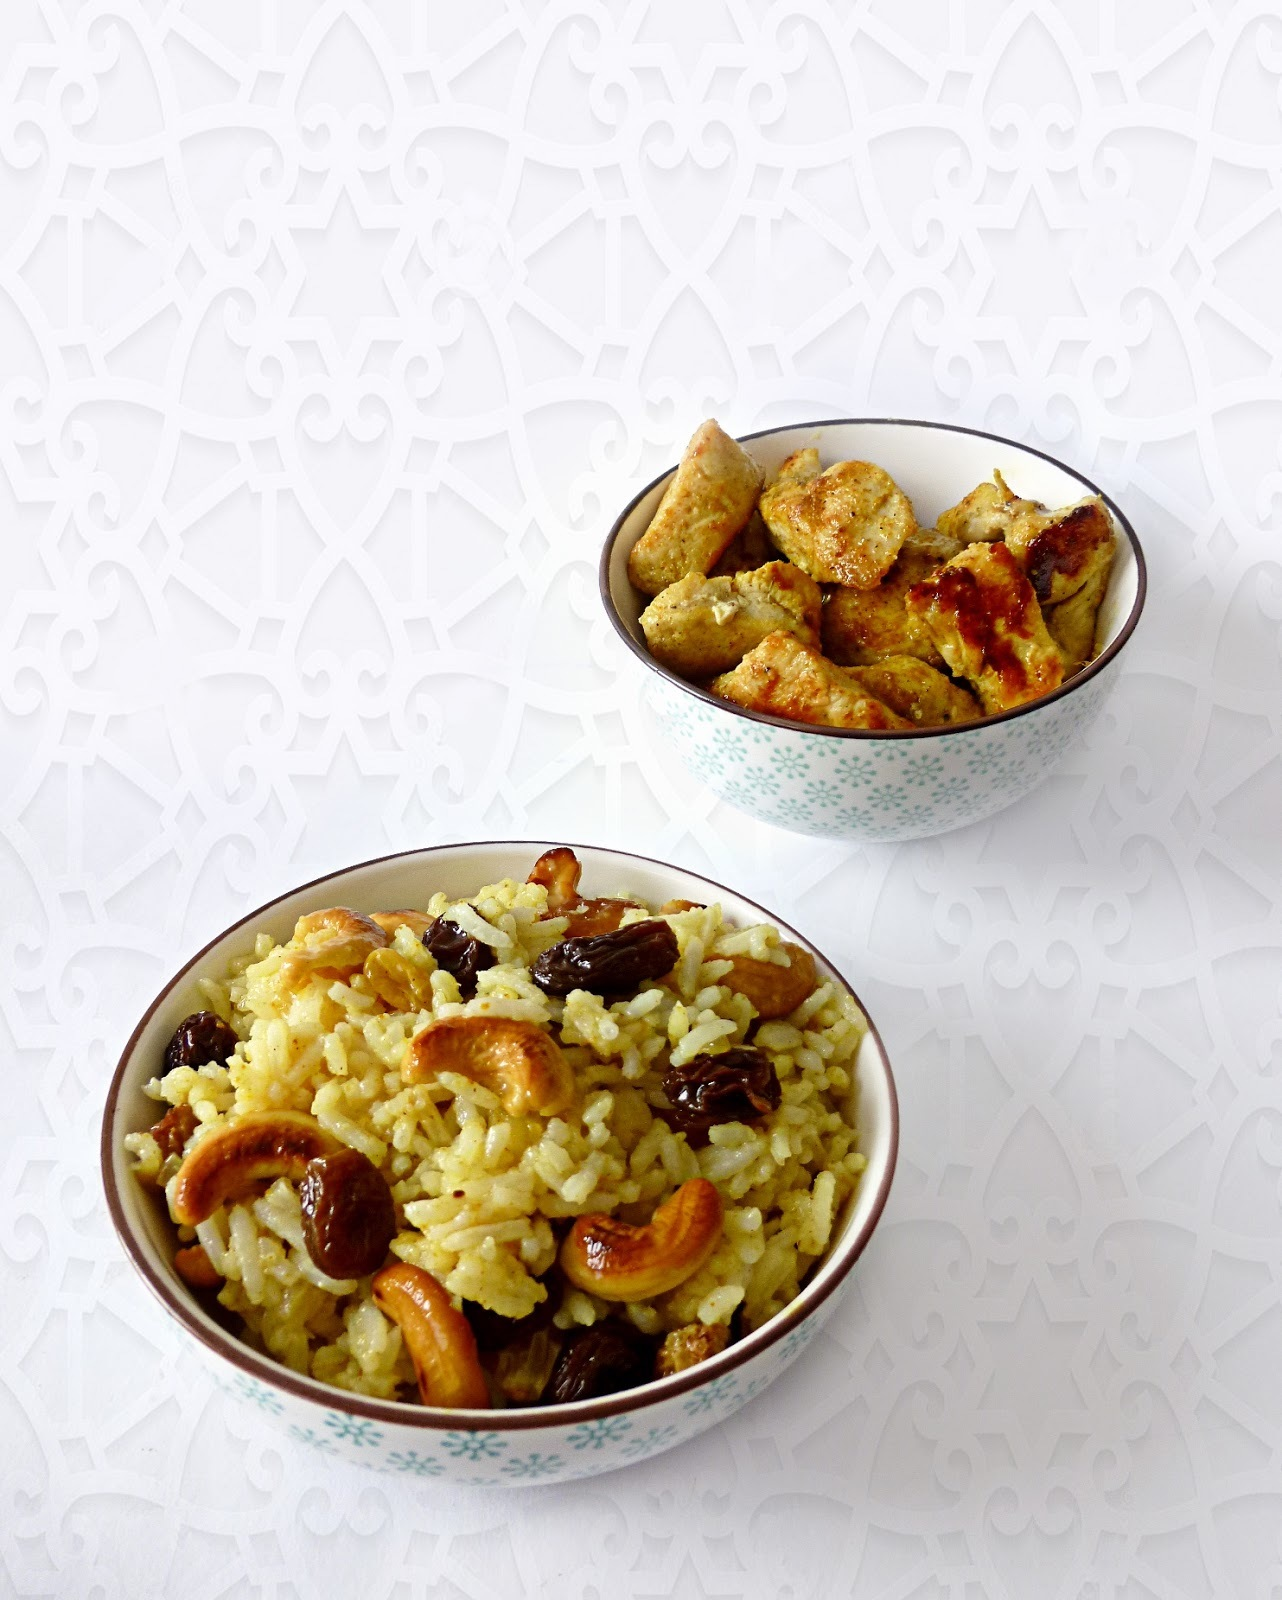 Arroz Basmati con Frutos Secos